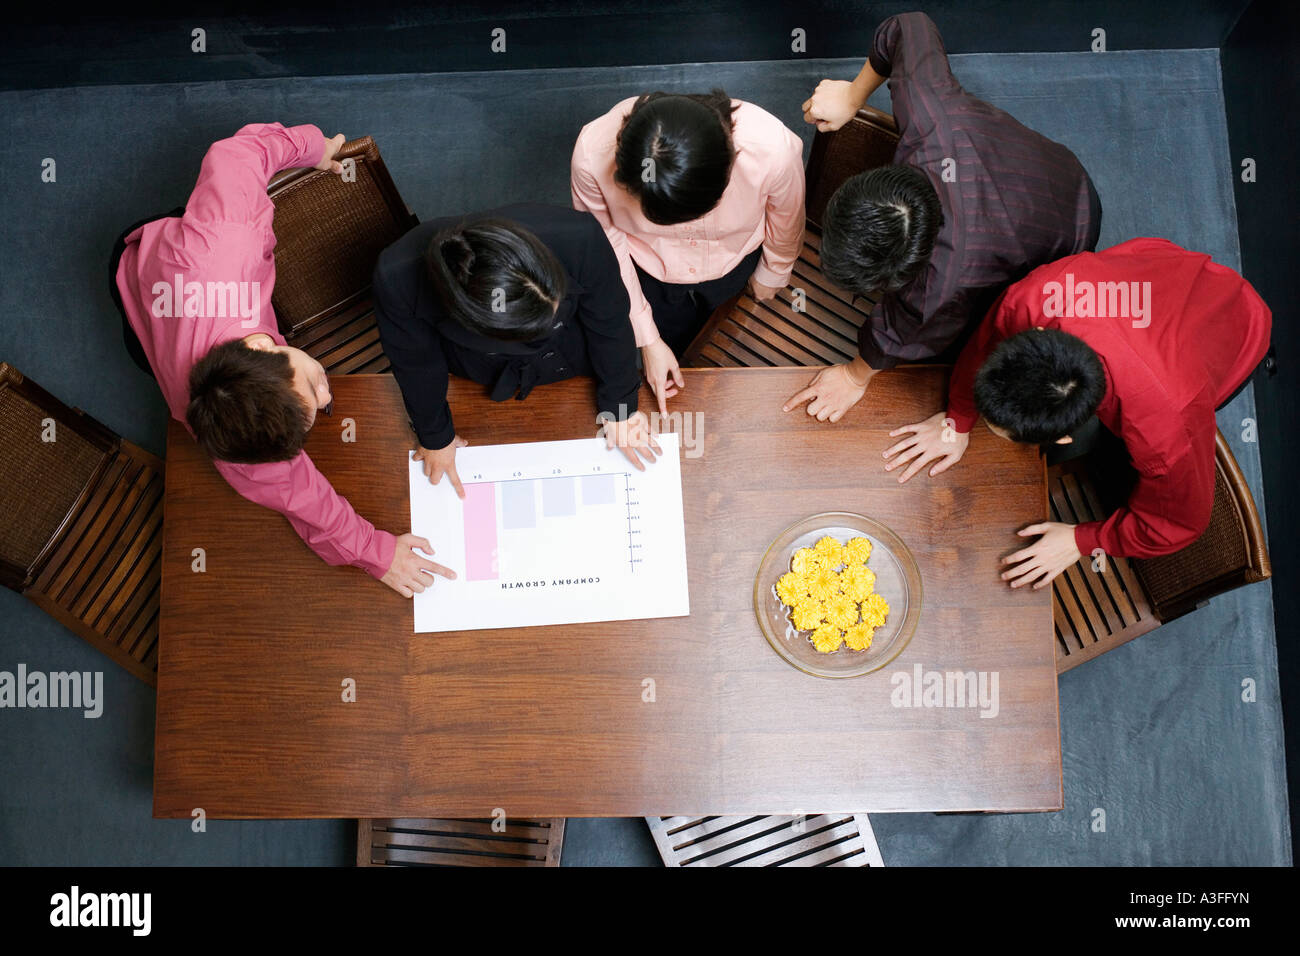 High angle view of two businesswomen and three businessmen discussing a bar graph - Stock Image